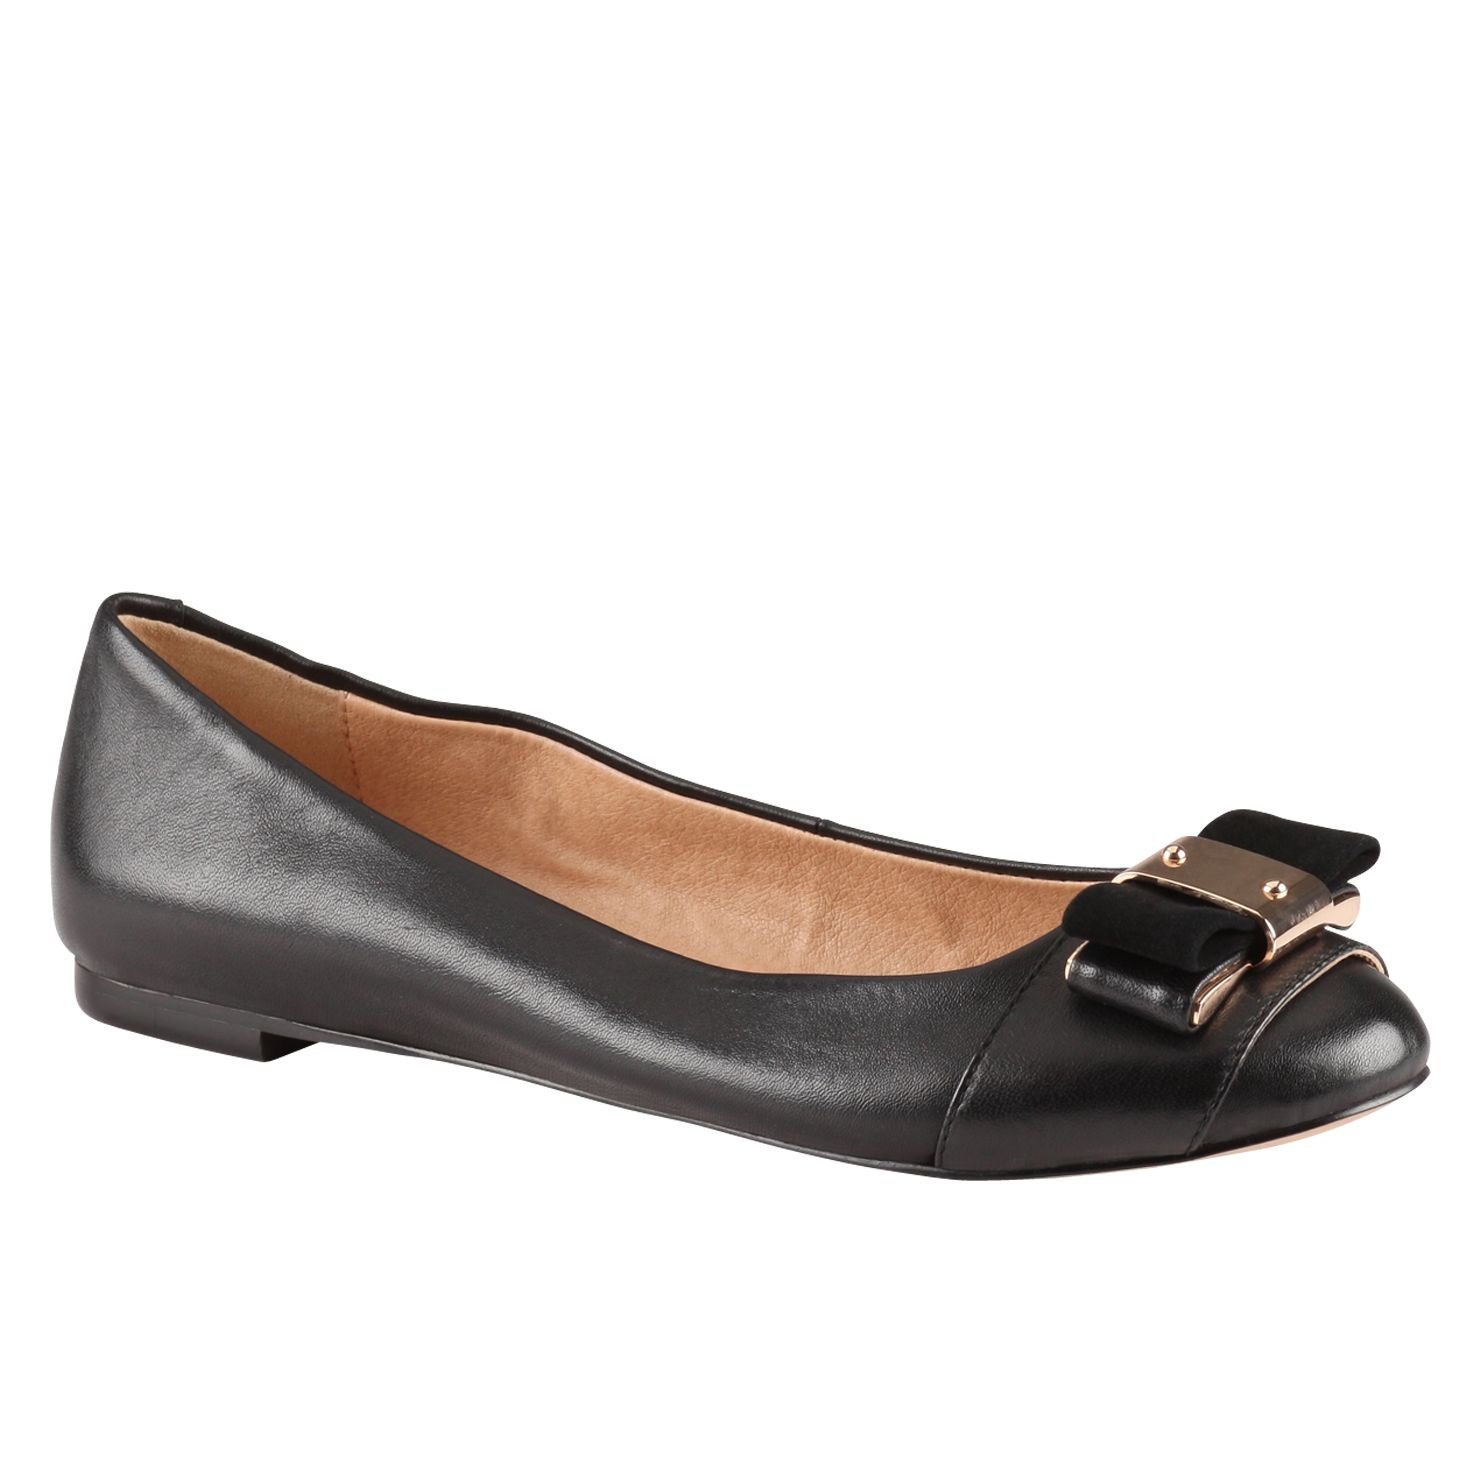 Juricek flat round toe pump shoes